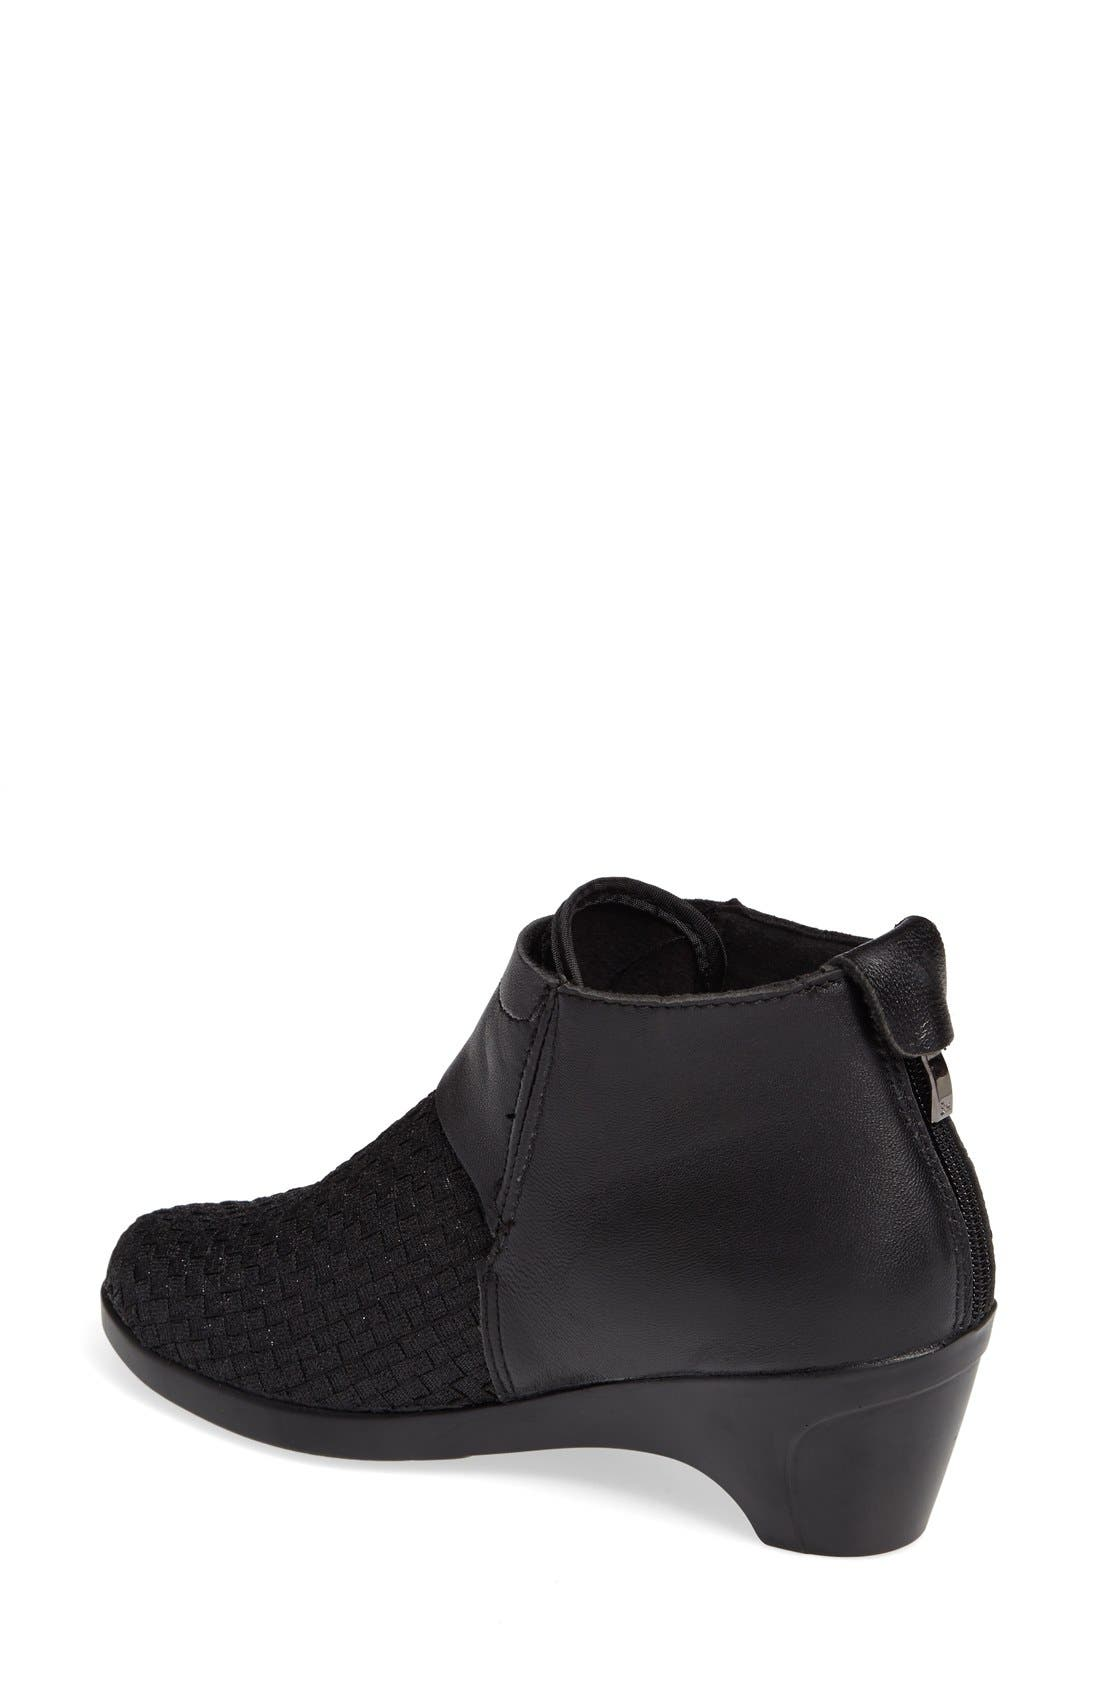 Zen Celine Mid Top Bootie,                             Alternate thumbnail 2, color,                             003